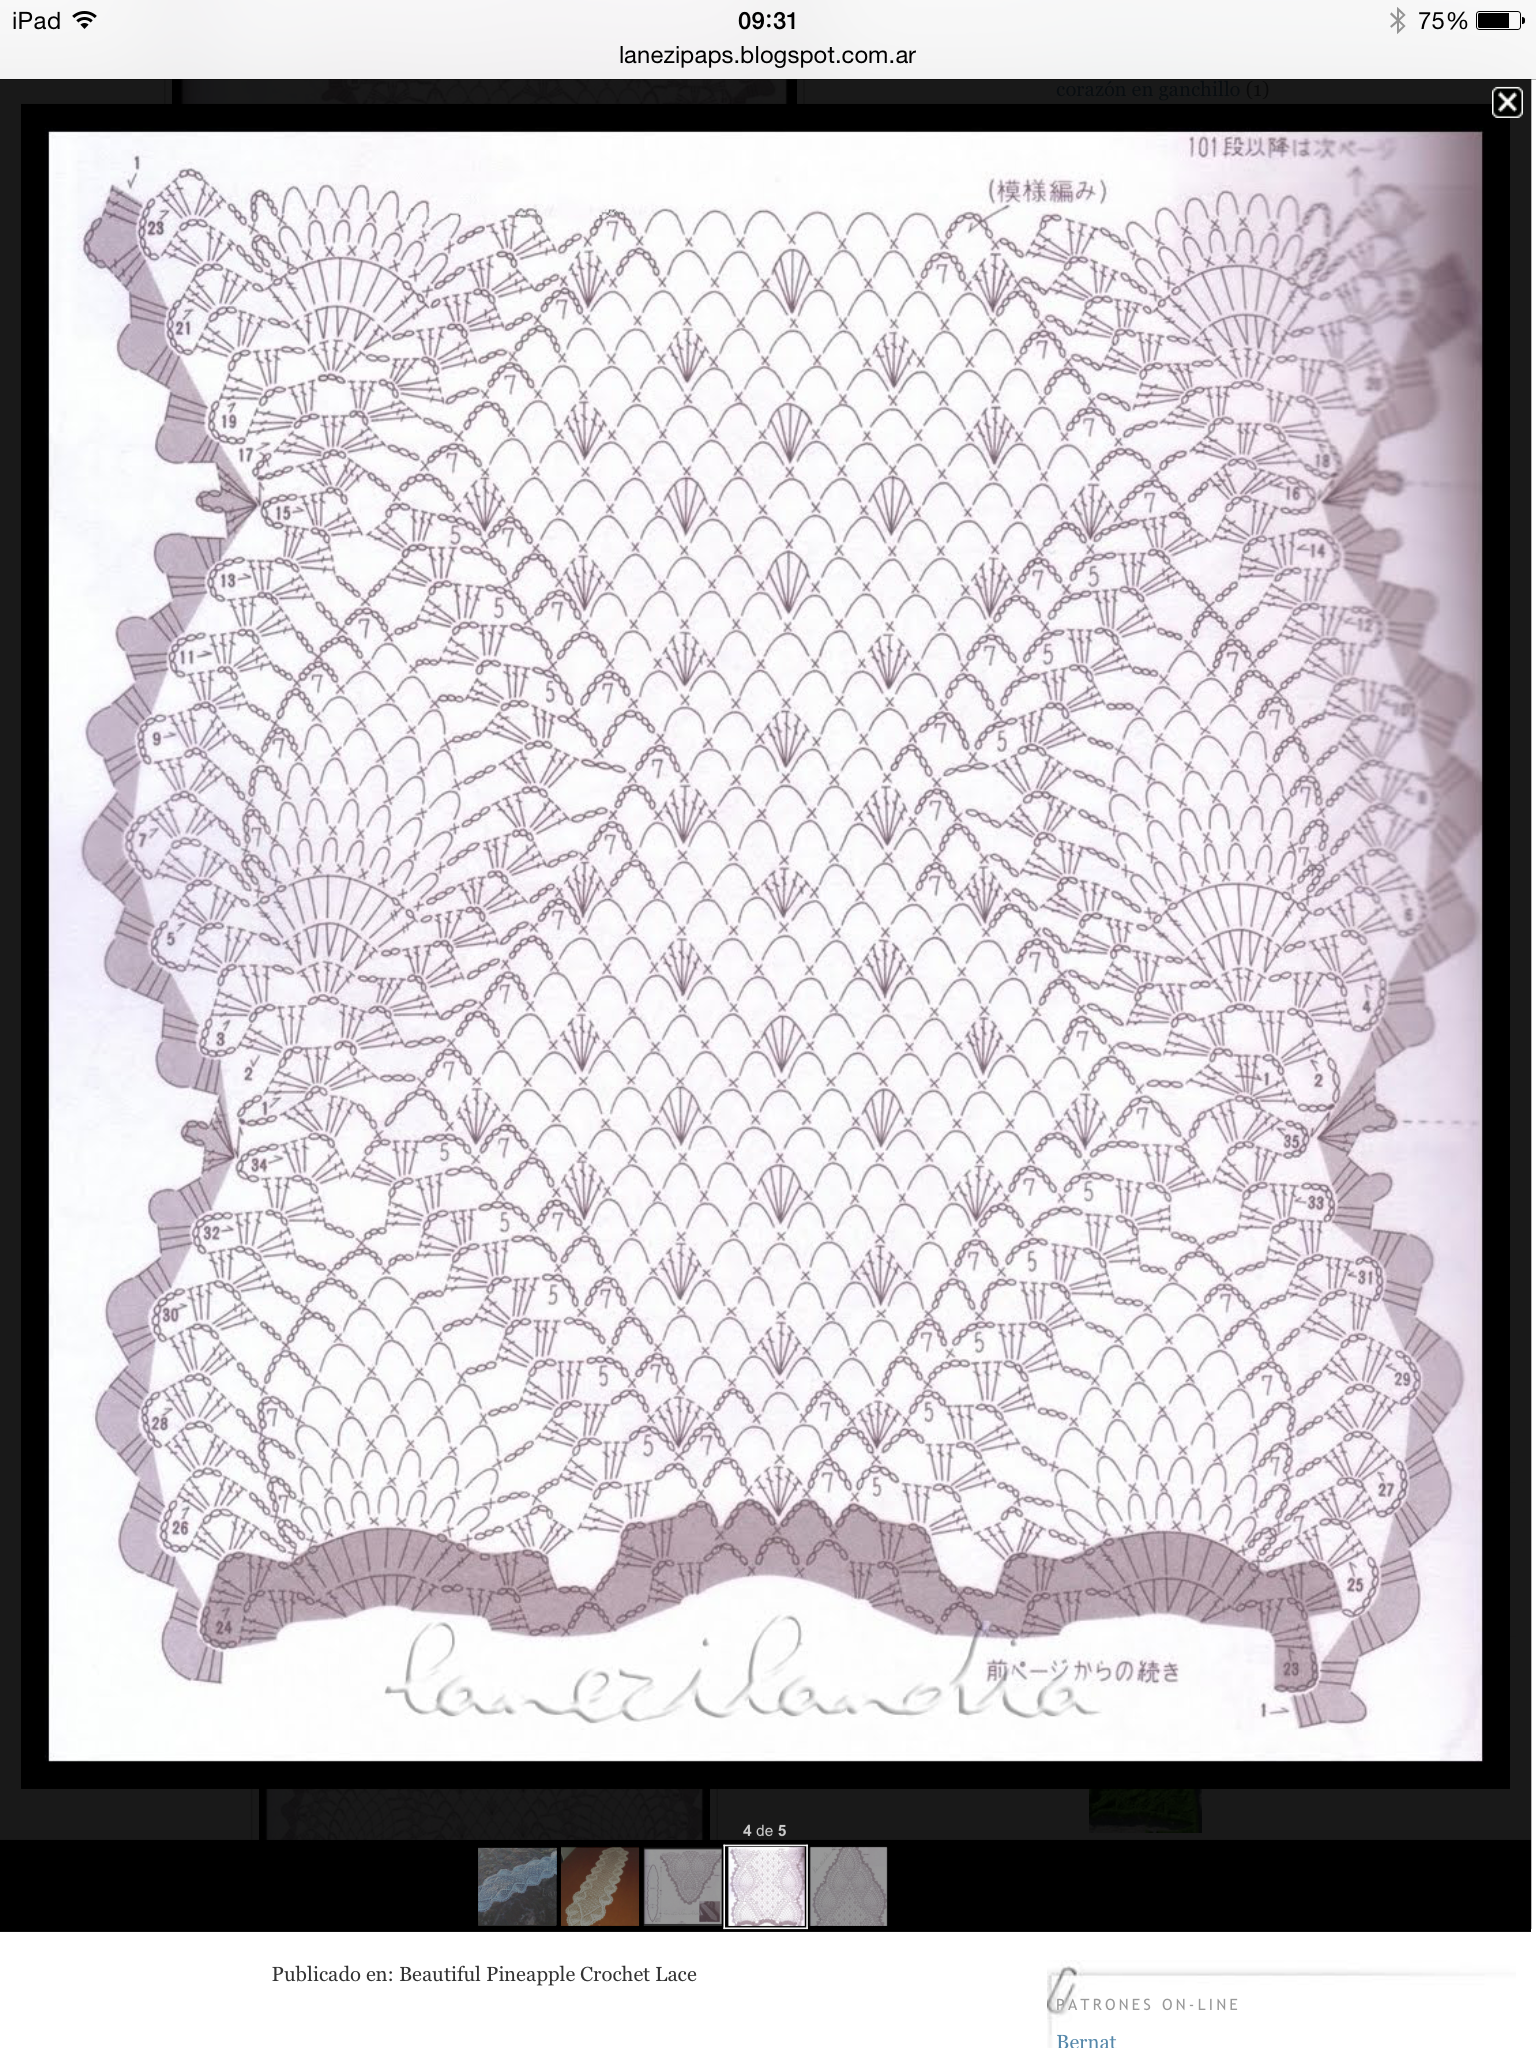 Pin by Patricia Martinez on Doilies | Pinterest | Crochet, Crochet ...